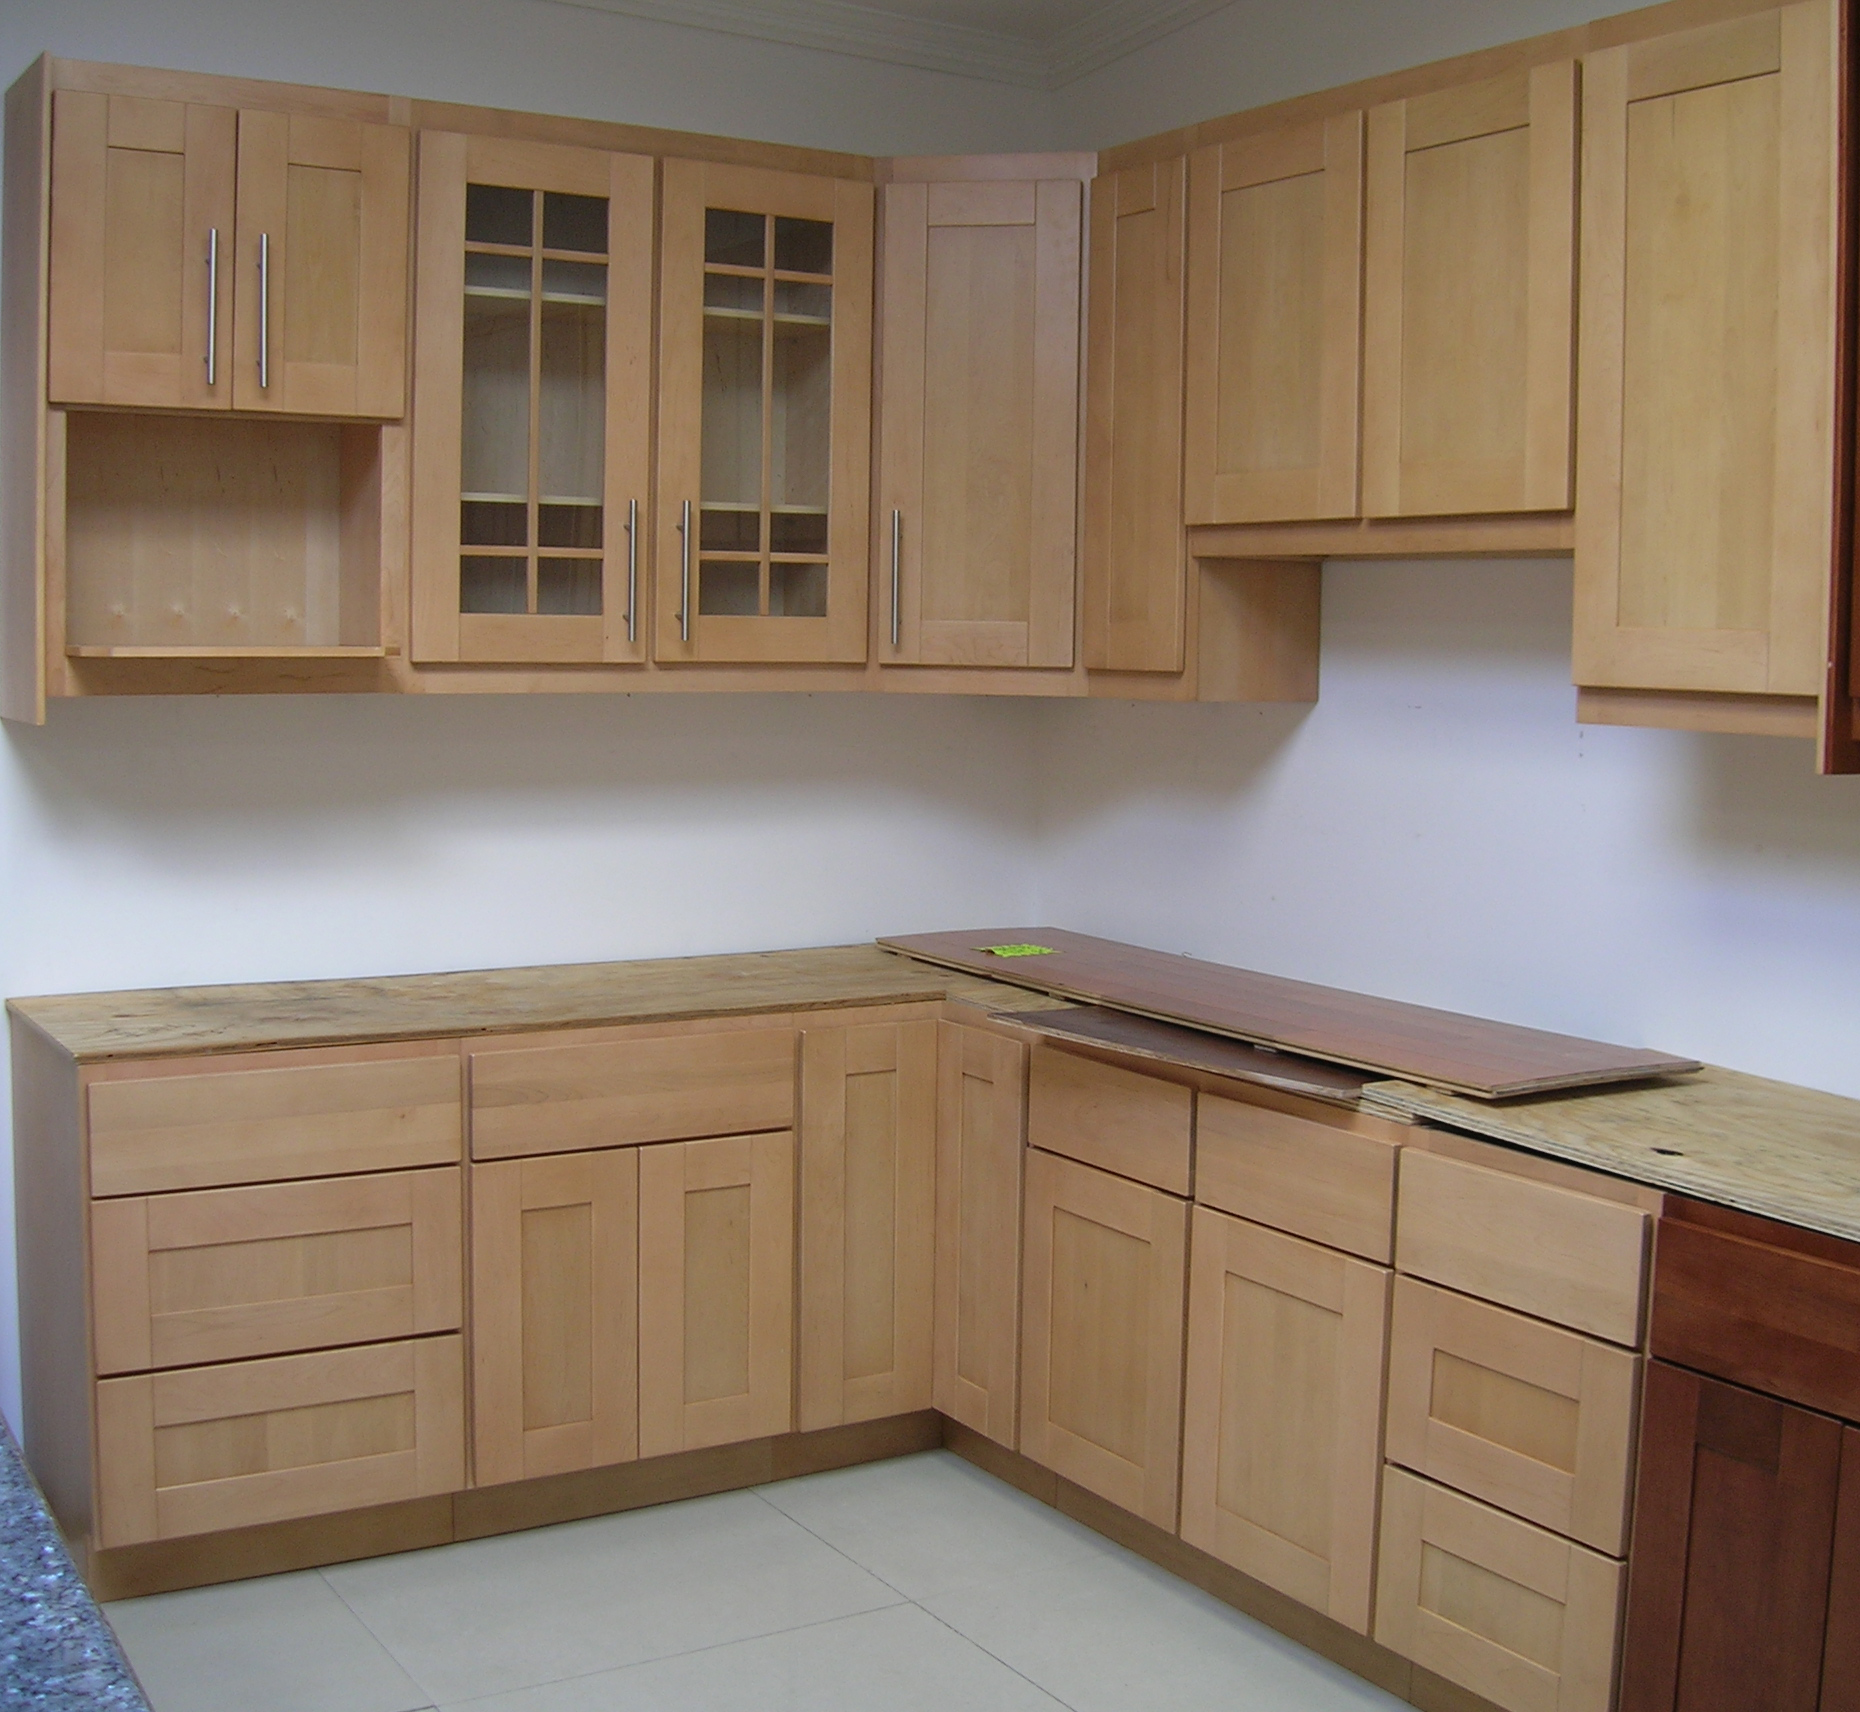 Superb Pictures Of Small Modern Kitchens #3: Maple_shaker_kitchen_cabinet.jpg